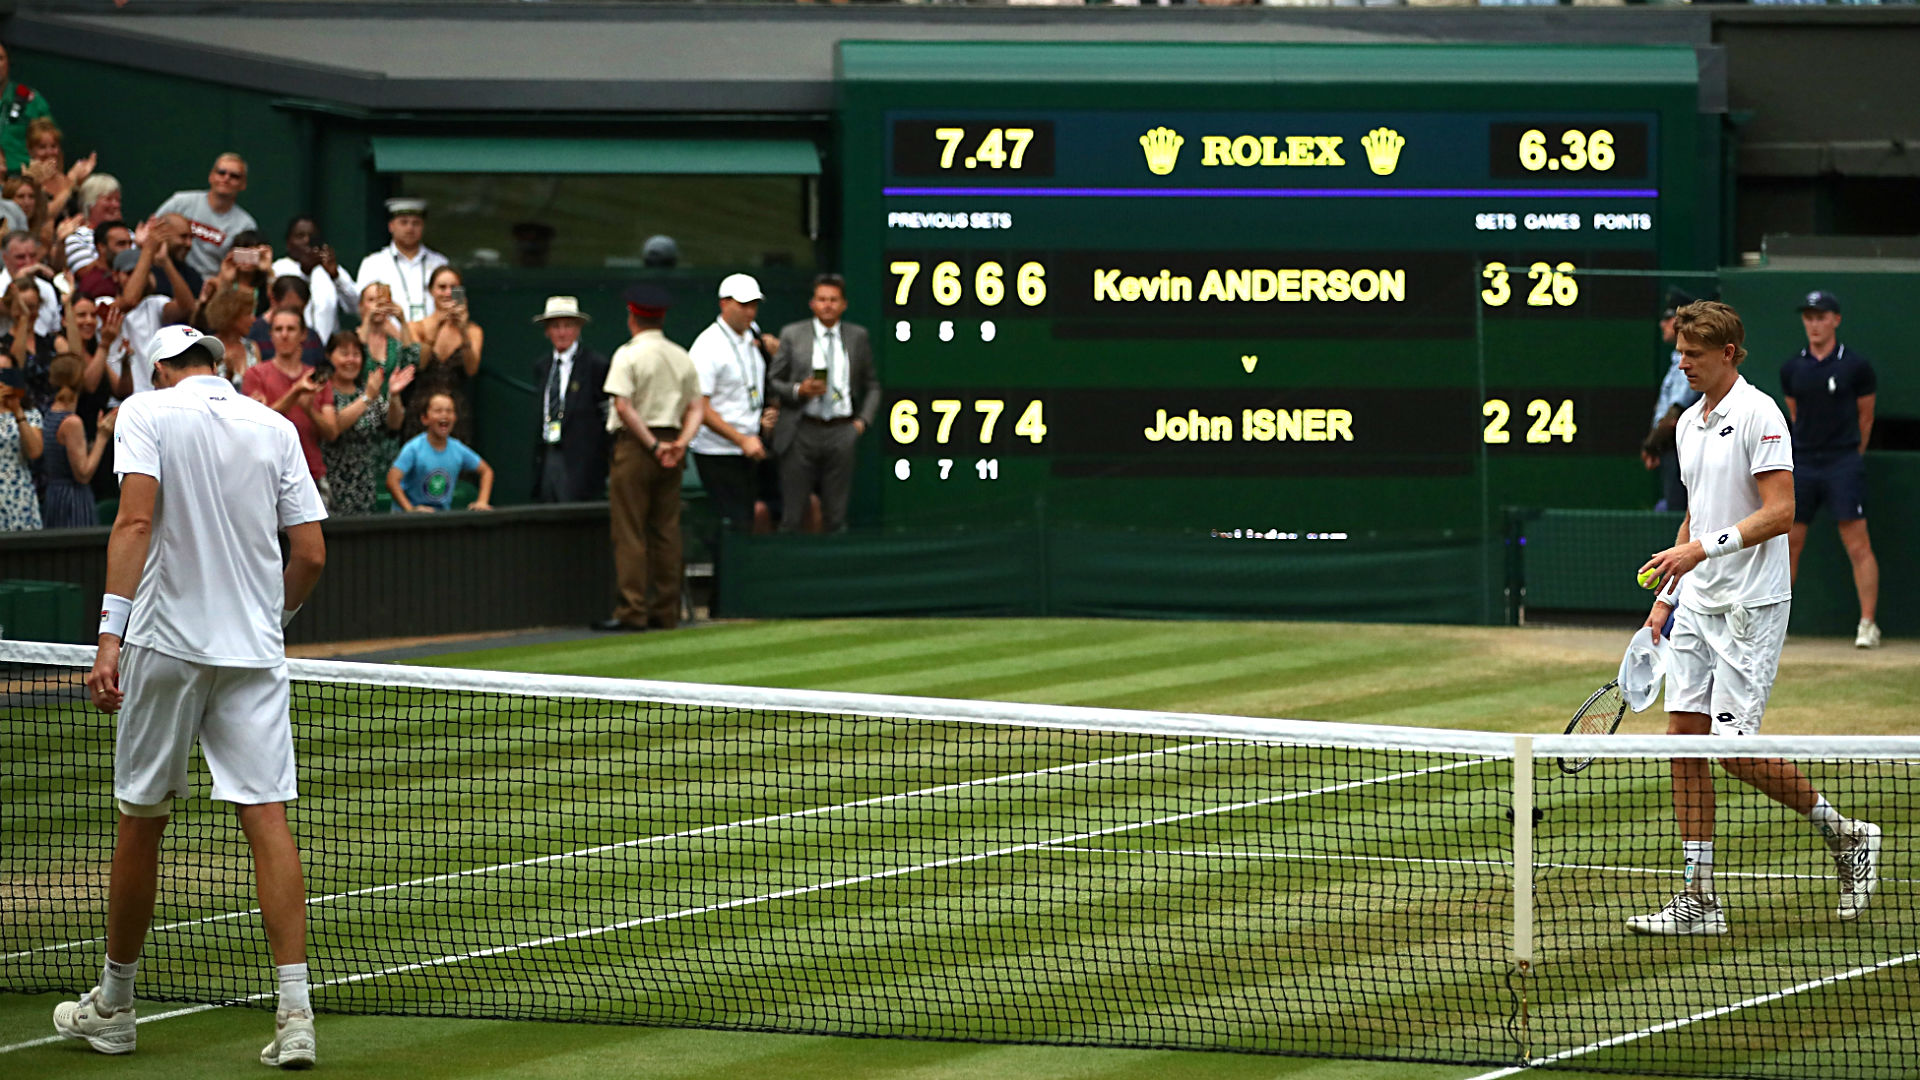 Wimbledon 2018: Kevin Anderson blasts fifth-set rule after 6 1/2-hour victory over John Isner